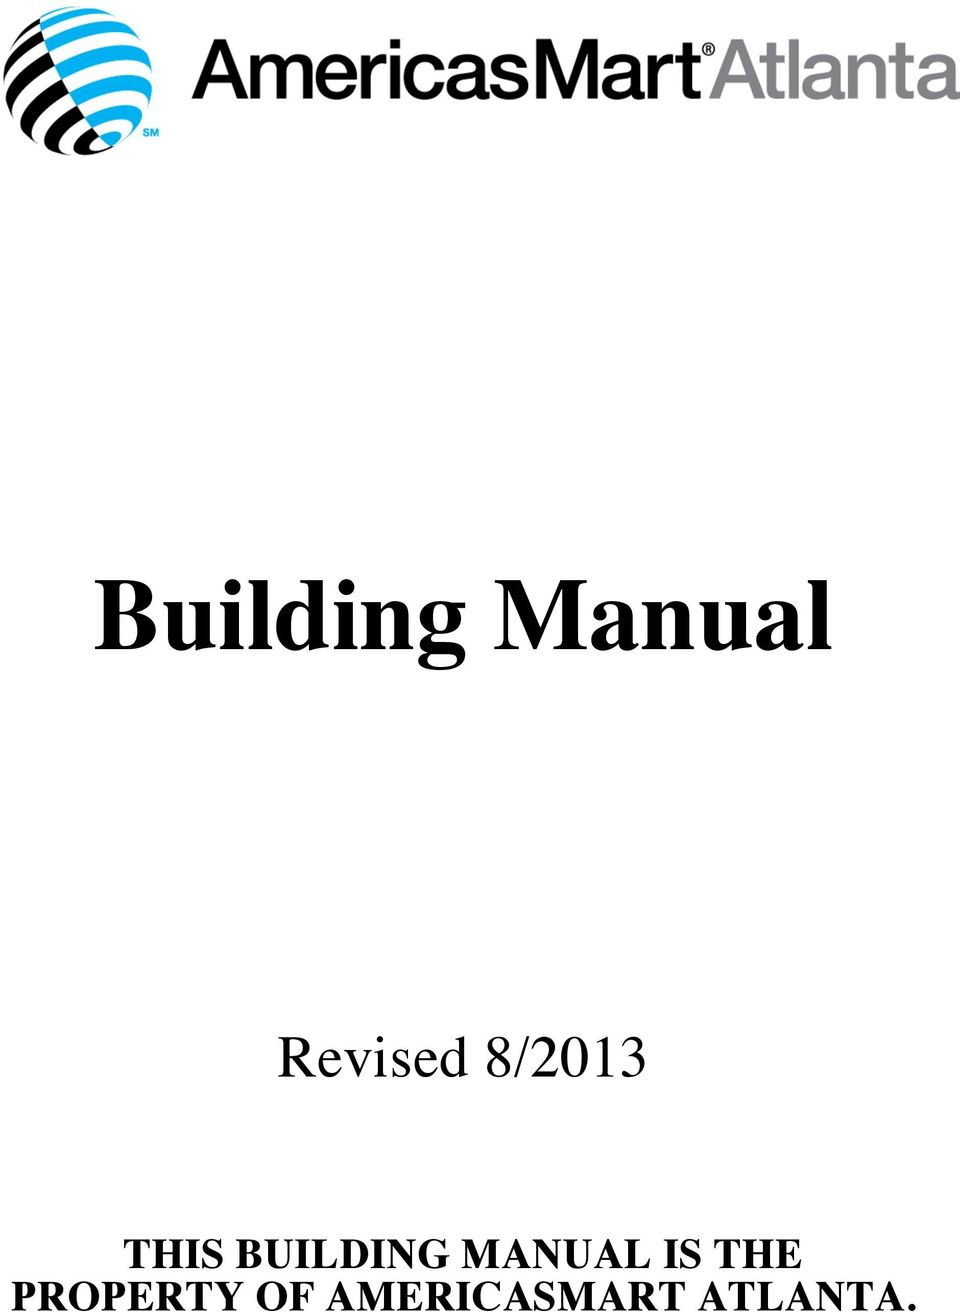 BUILDING MANUAL IS THE